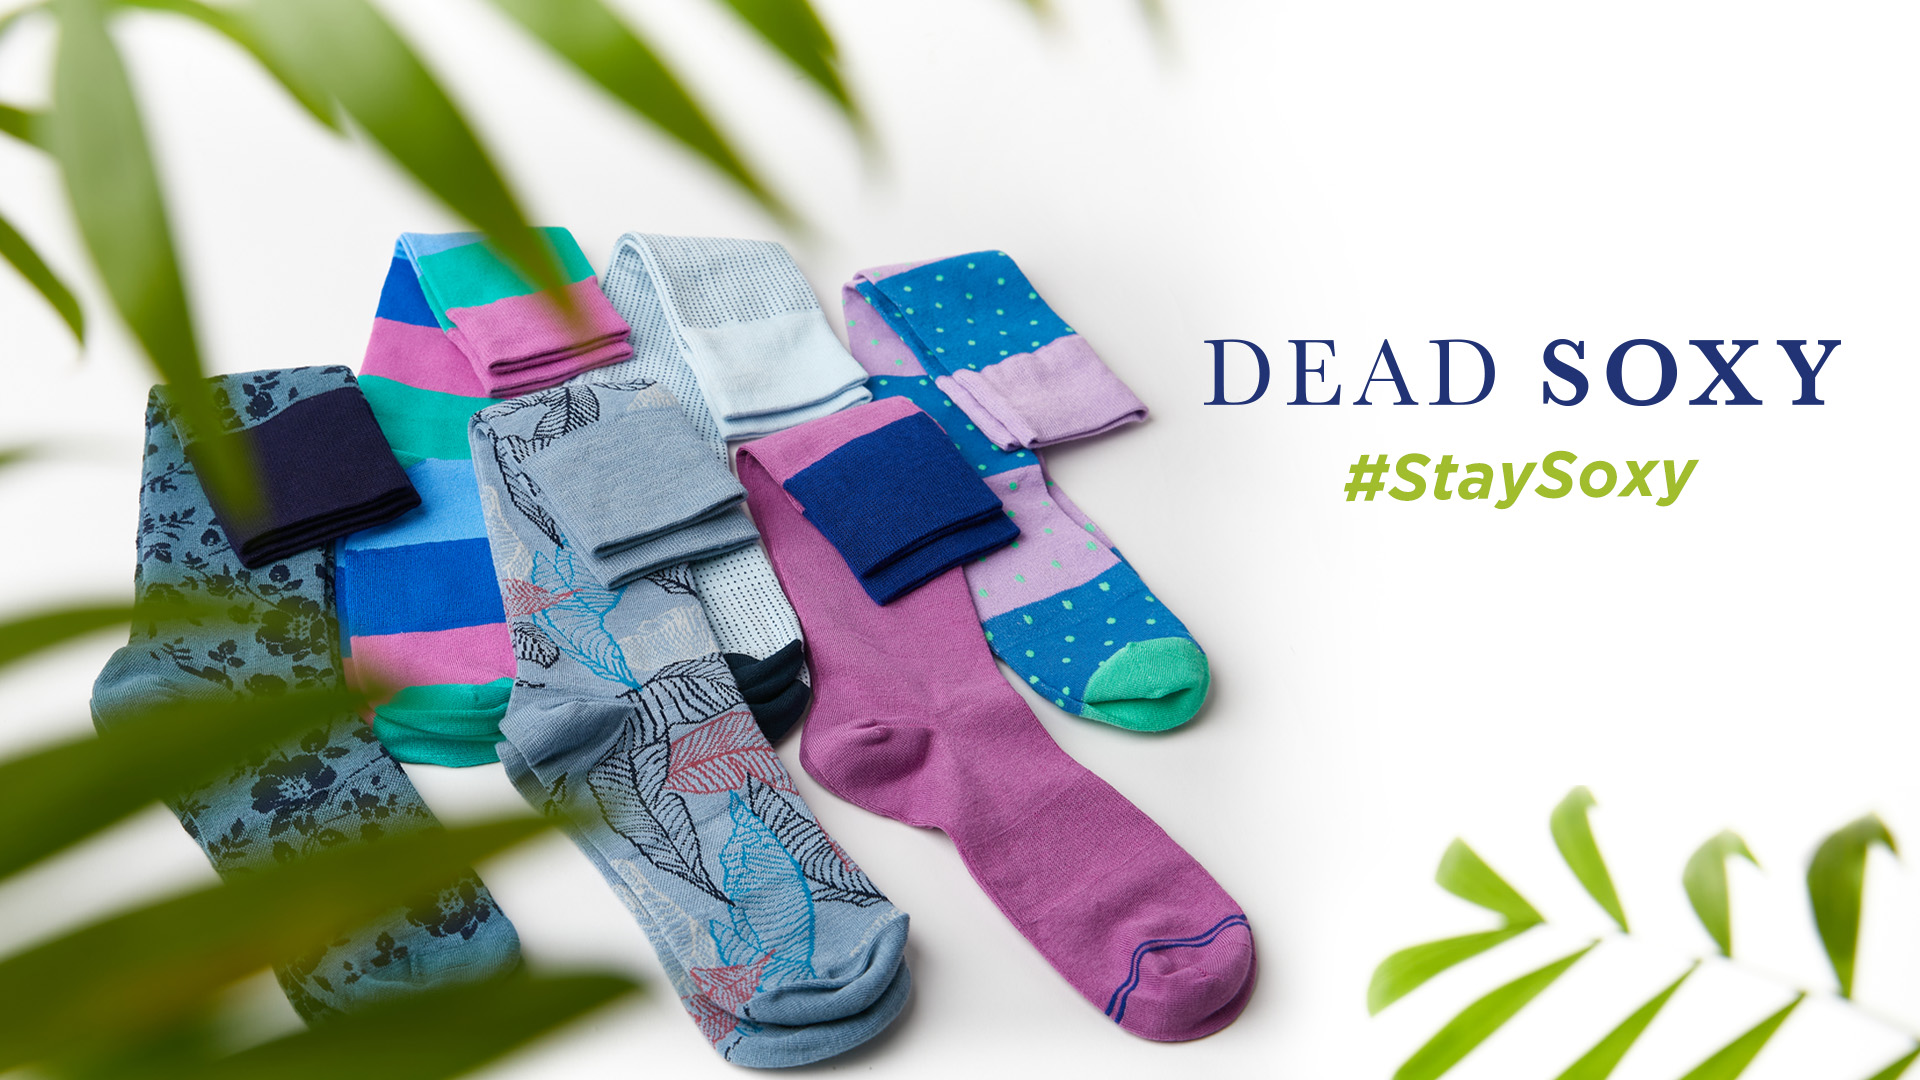 premium bamboo dress socks laid out behind plant leaves with deadsoxy